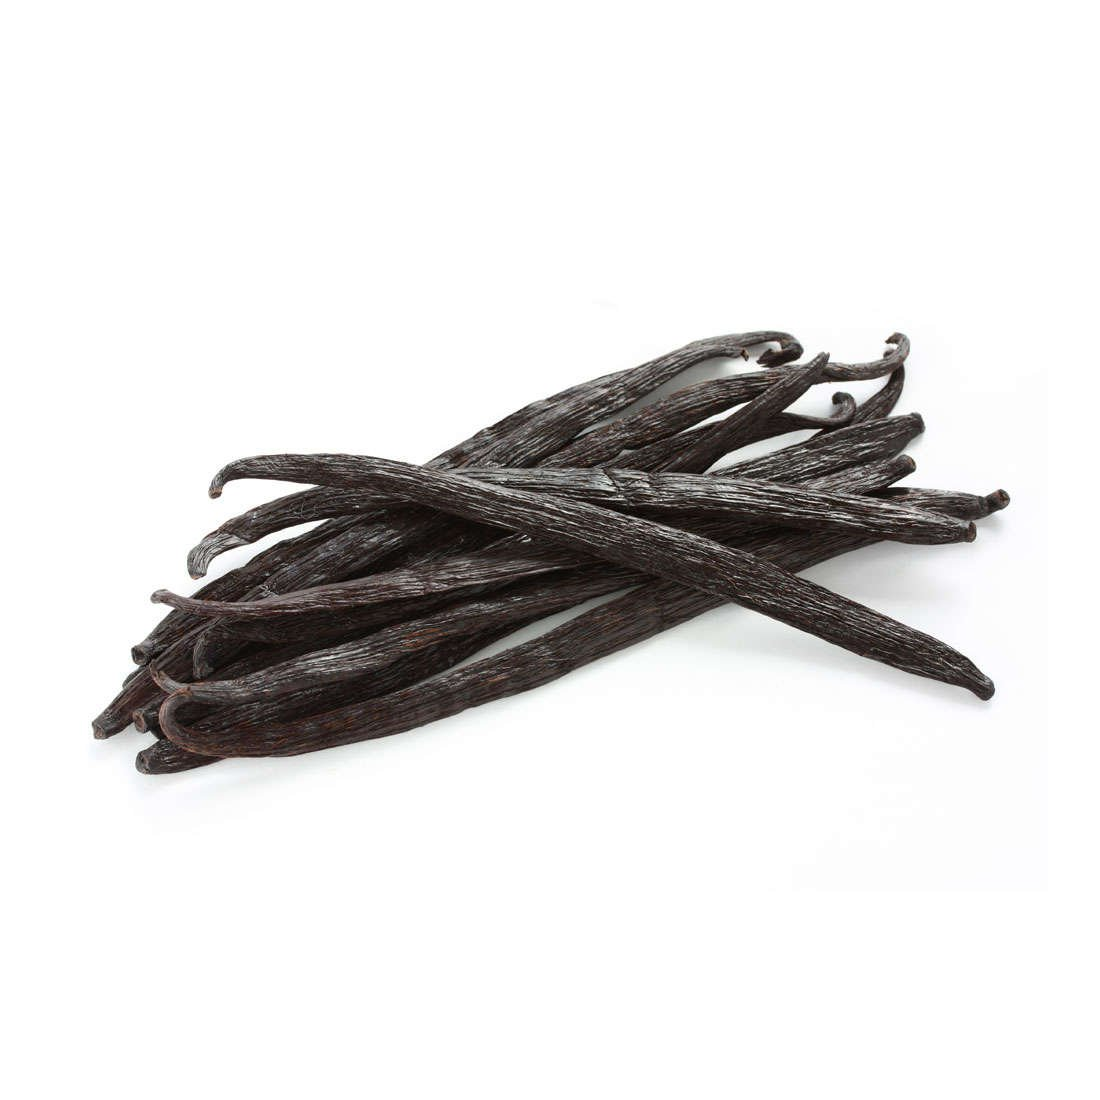 Vanilla essential oil helps you feel tranquil